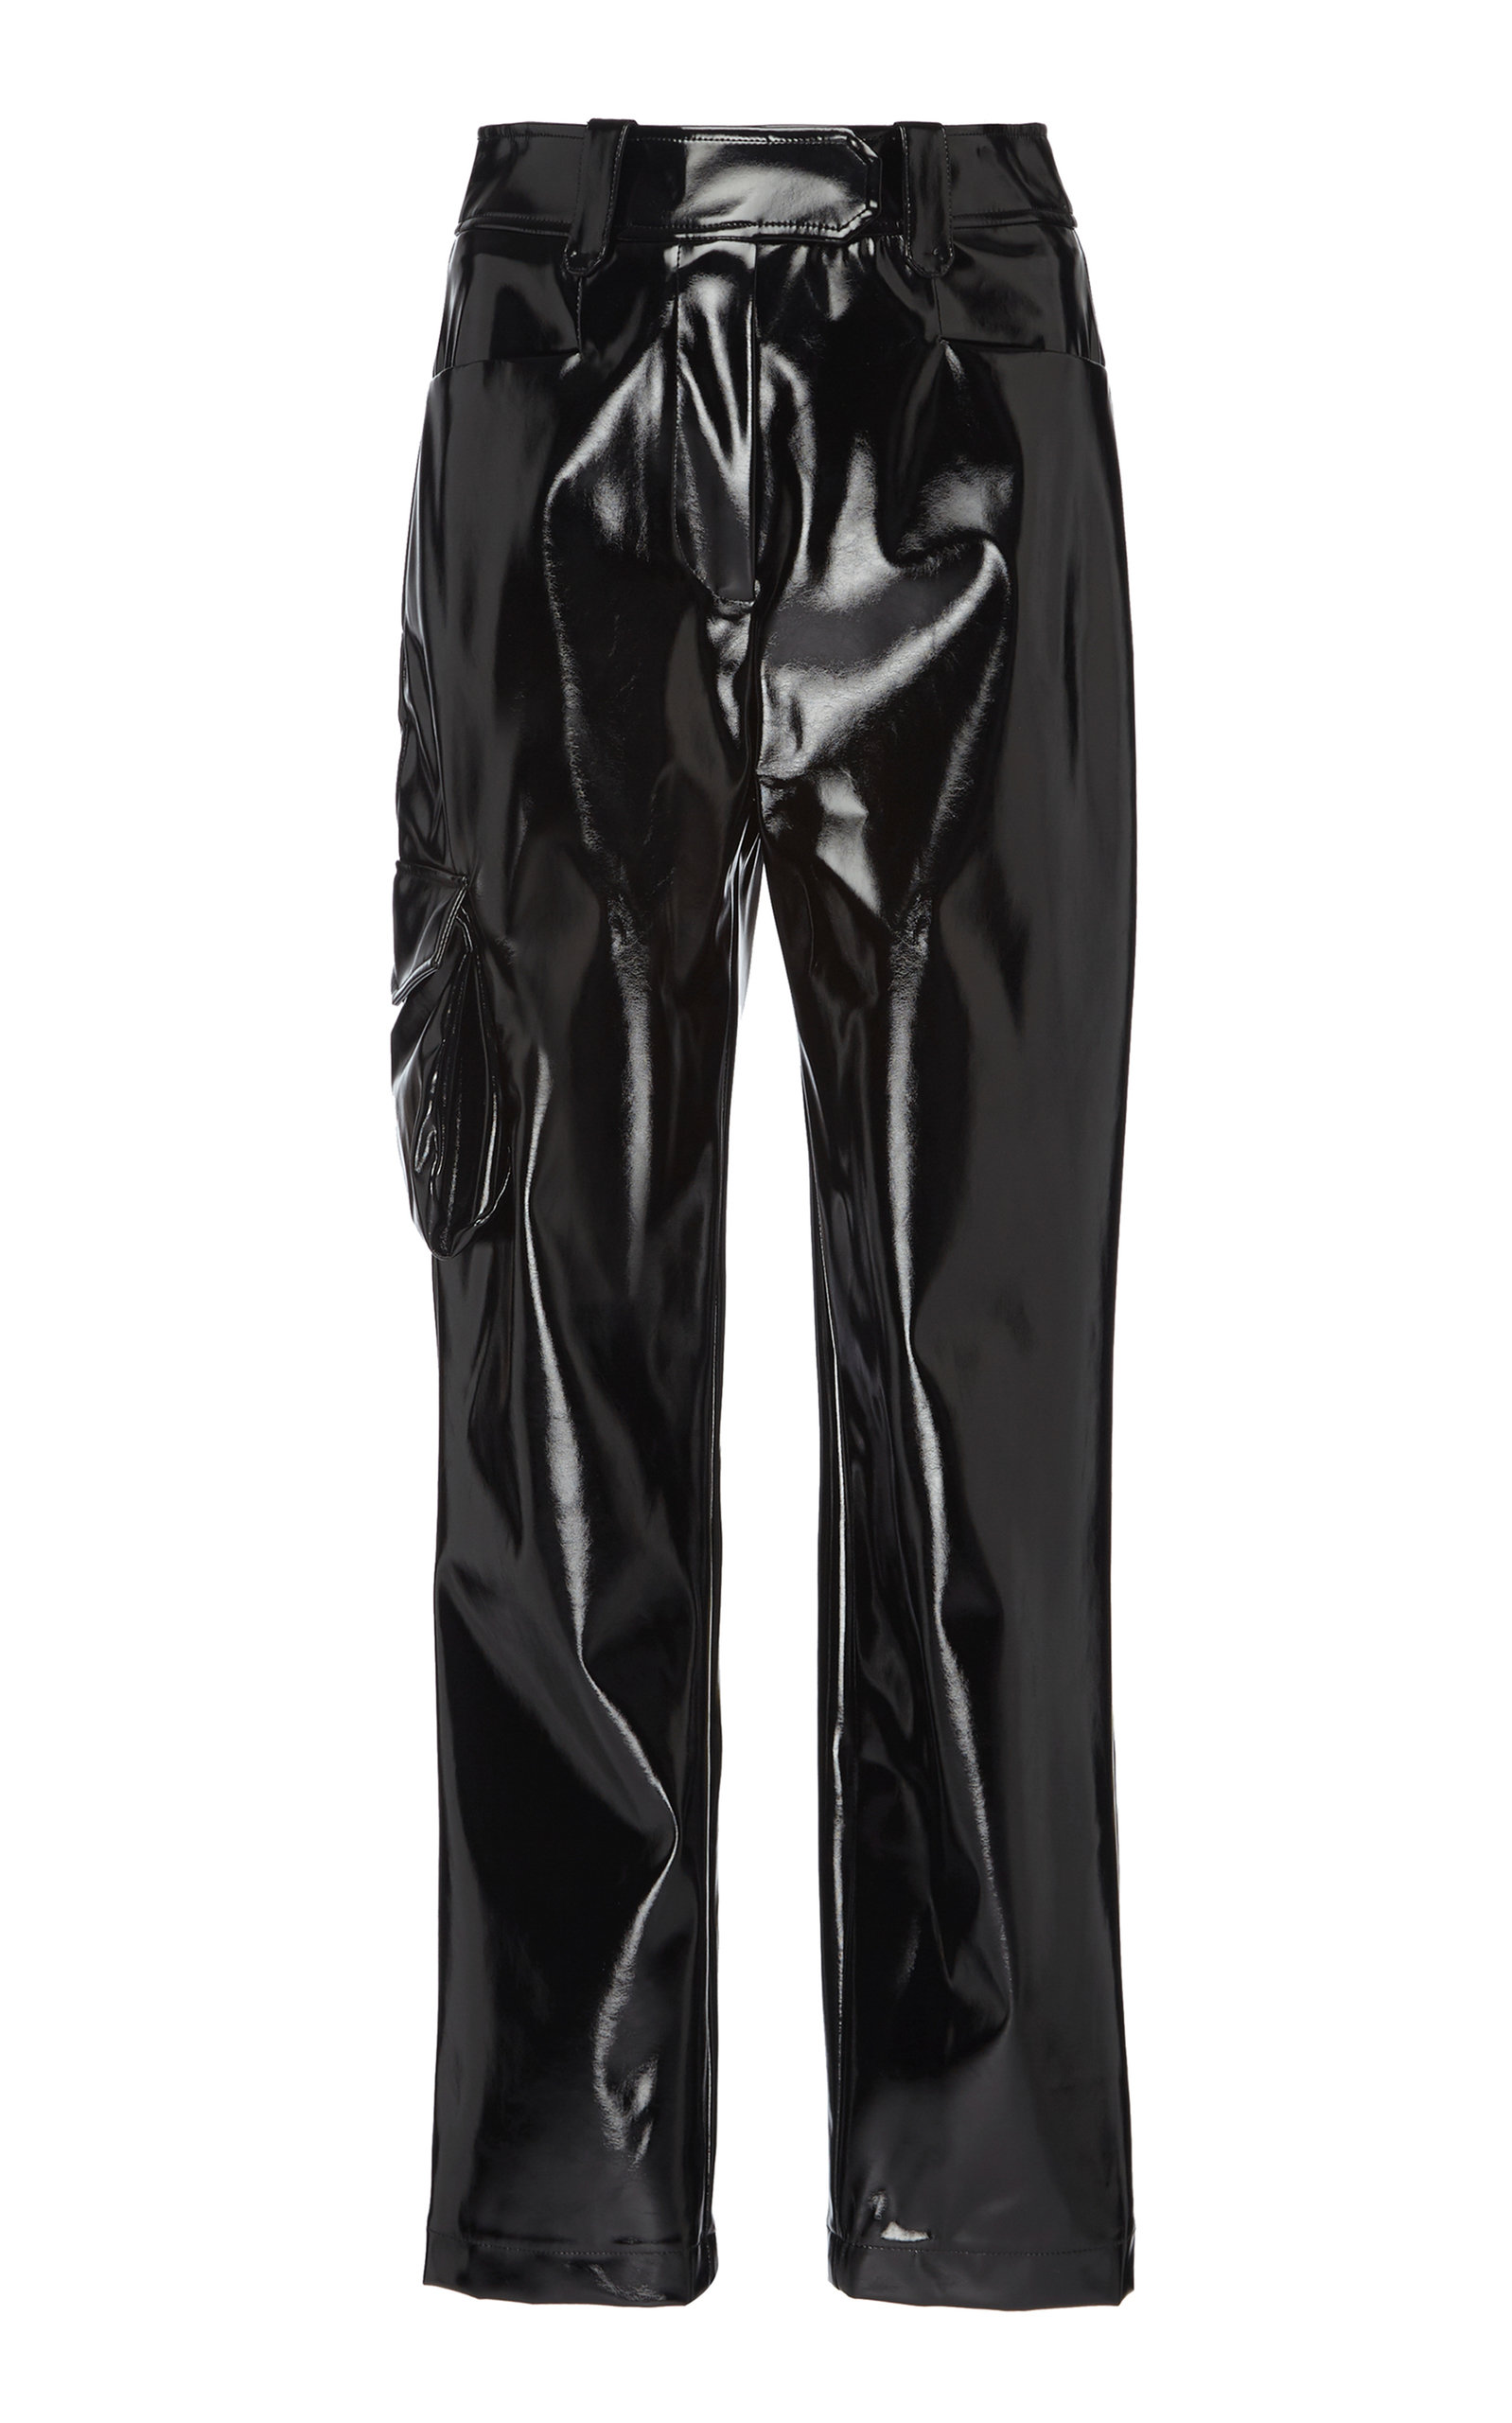 ELEANOR BALFOUR Exclusive Stephanie Cropped Straight-Leg Vinyl Pant in Black